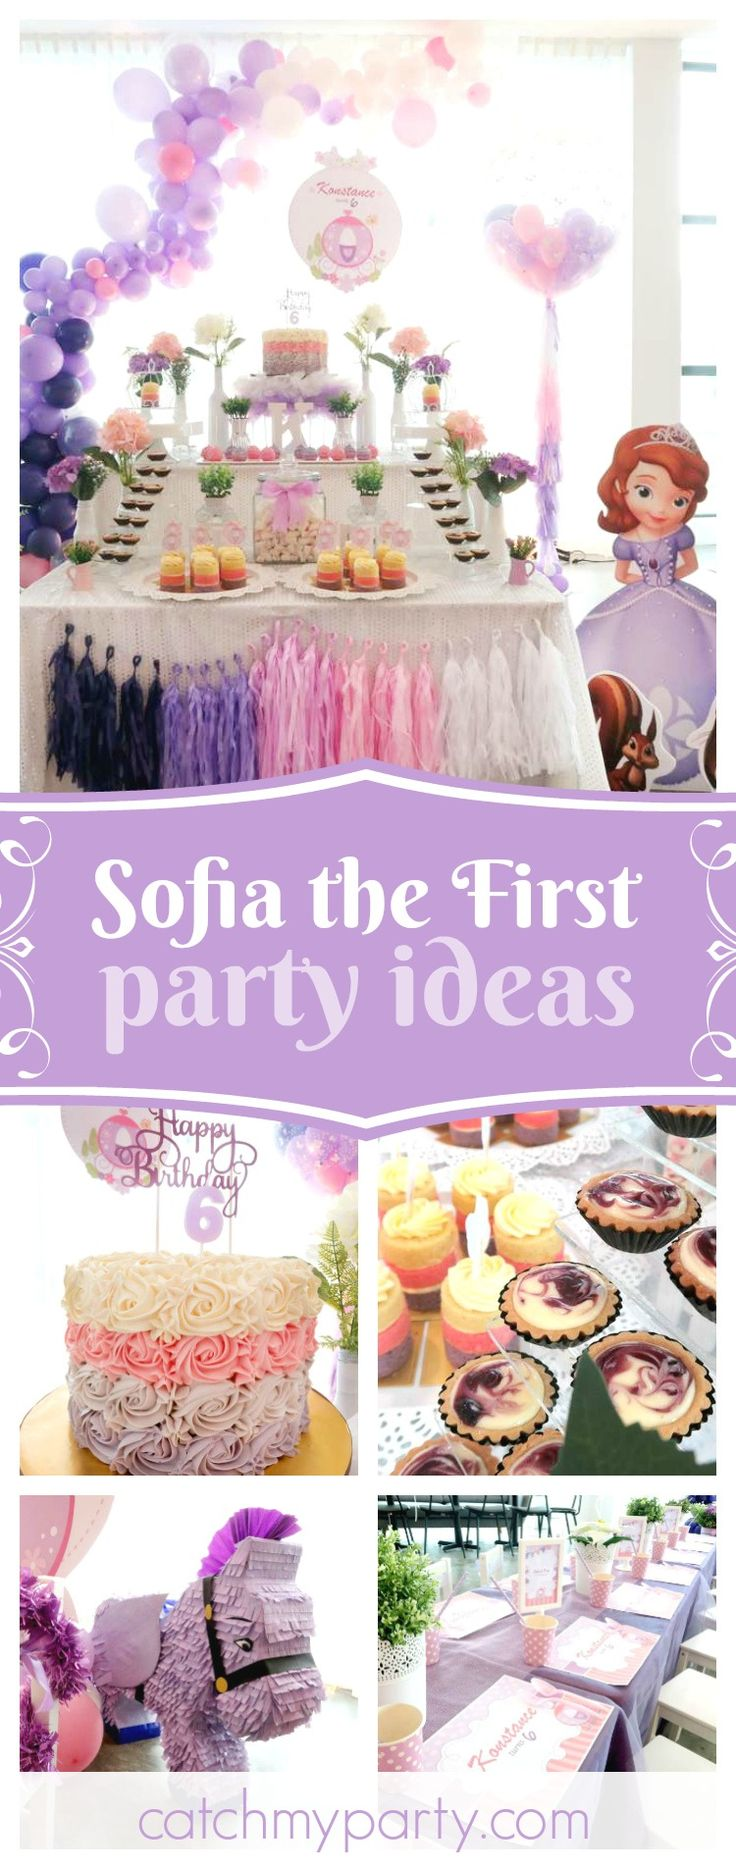 You definitely don't want to miss this Sofia the First birthday party. The dessert table is so beautiful! See more party ideas and share yours a CatchMyParty.com